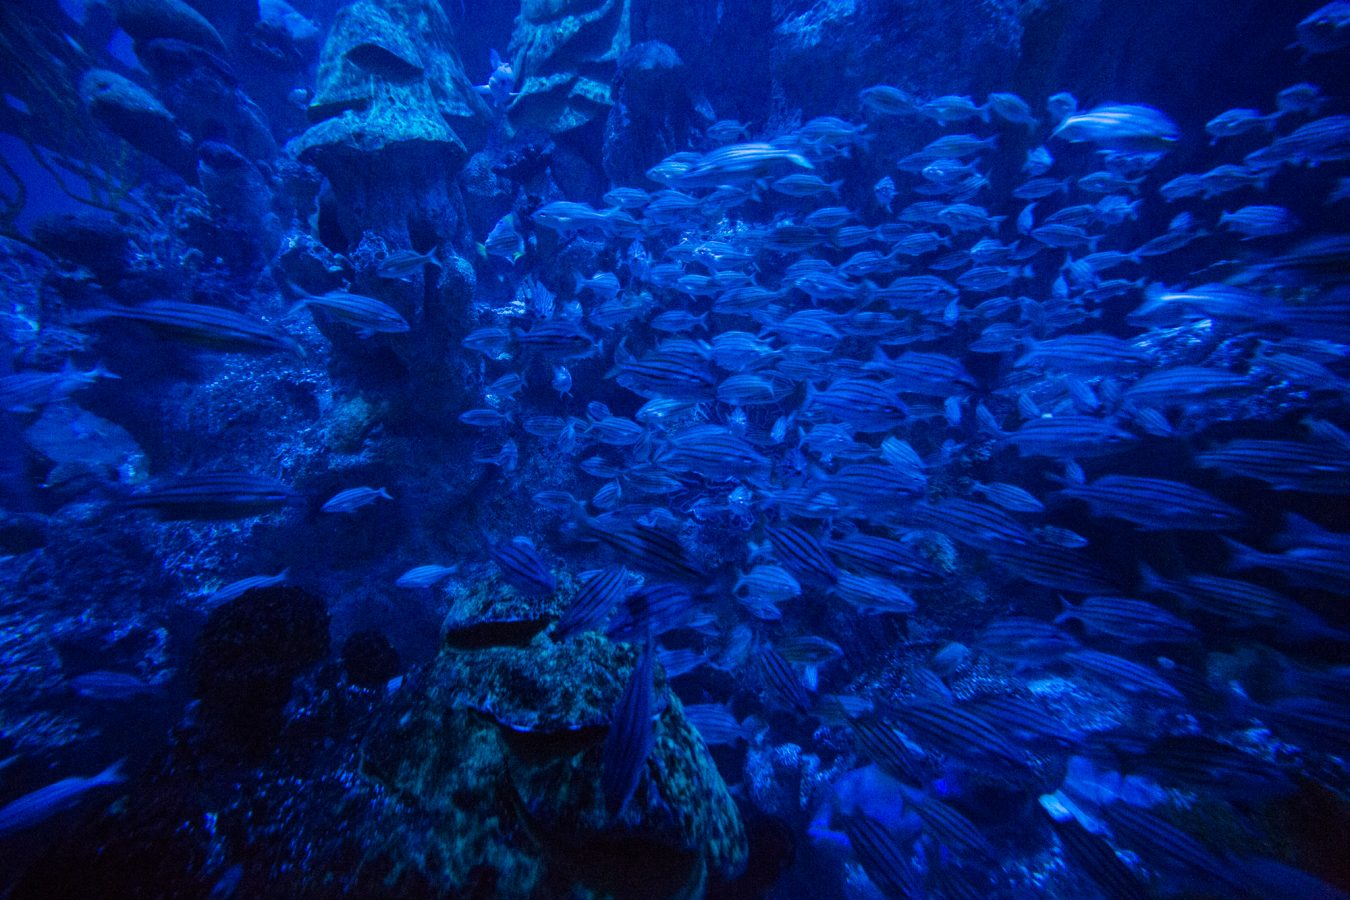 Fish swim in the Giant Ocean Tank under a distinct blue lighting that is meant to replicate the moon